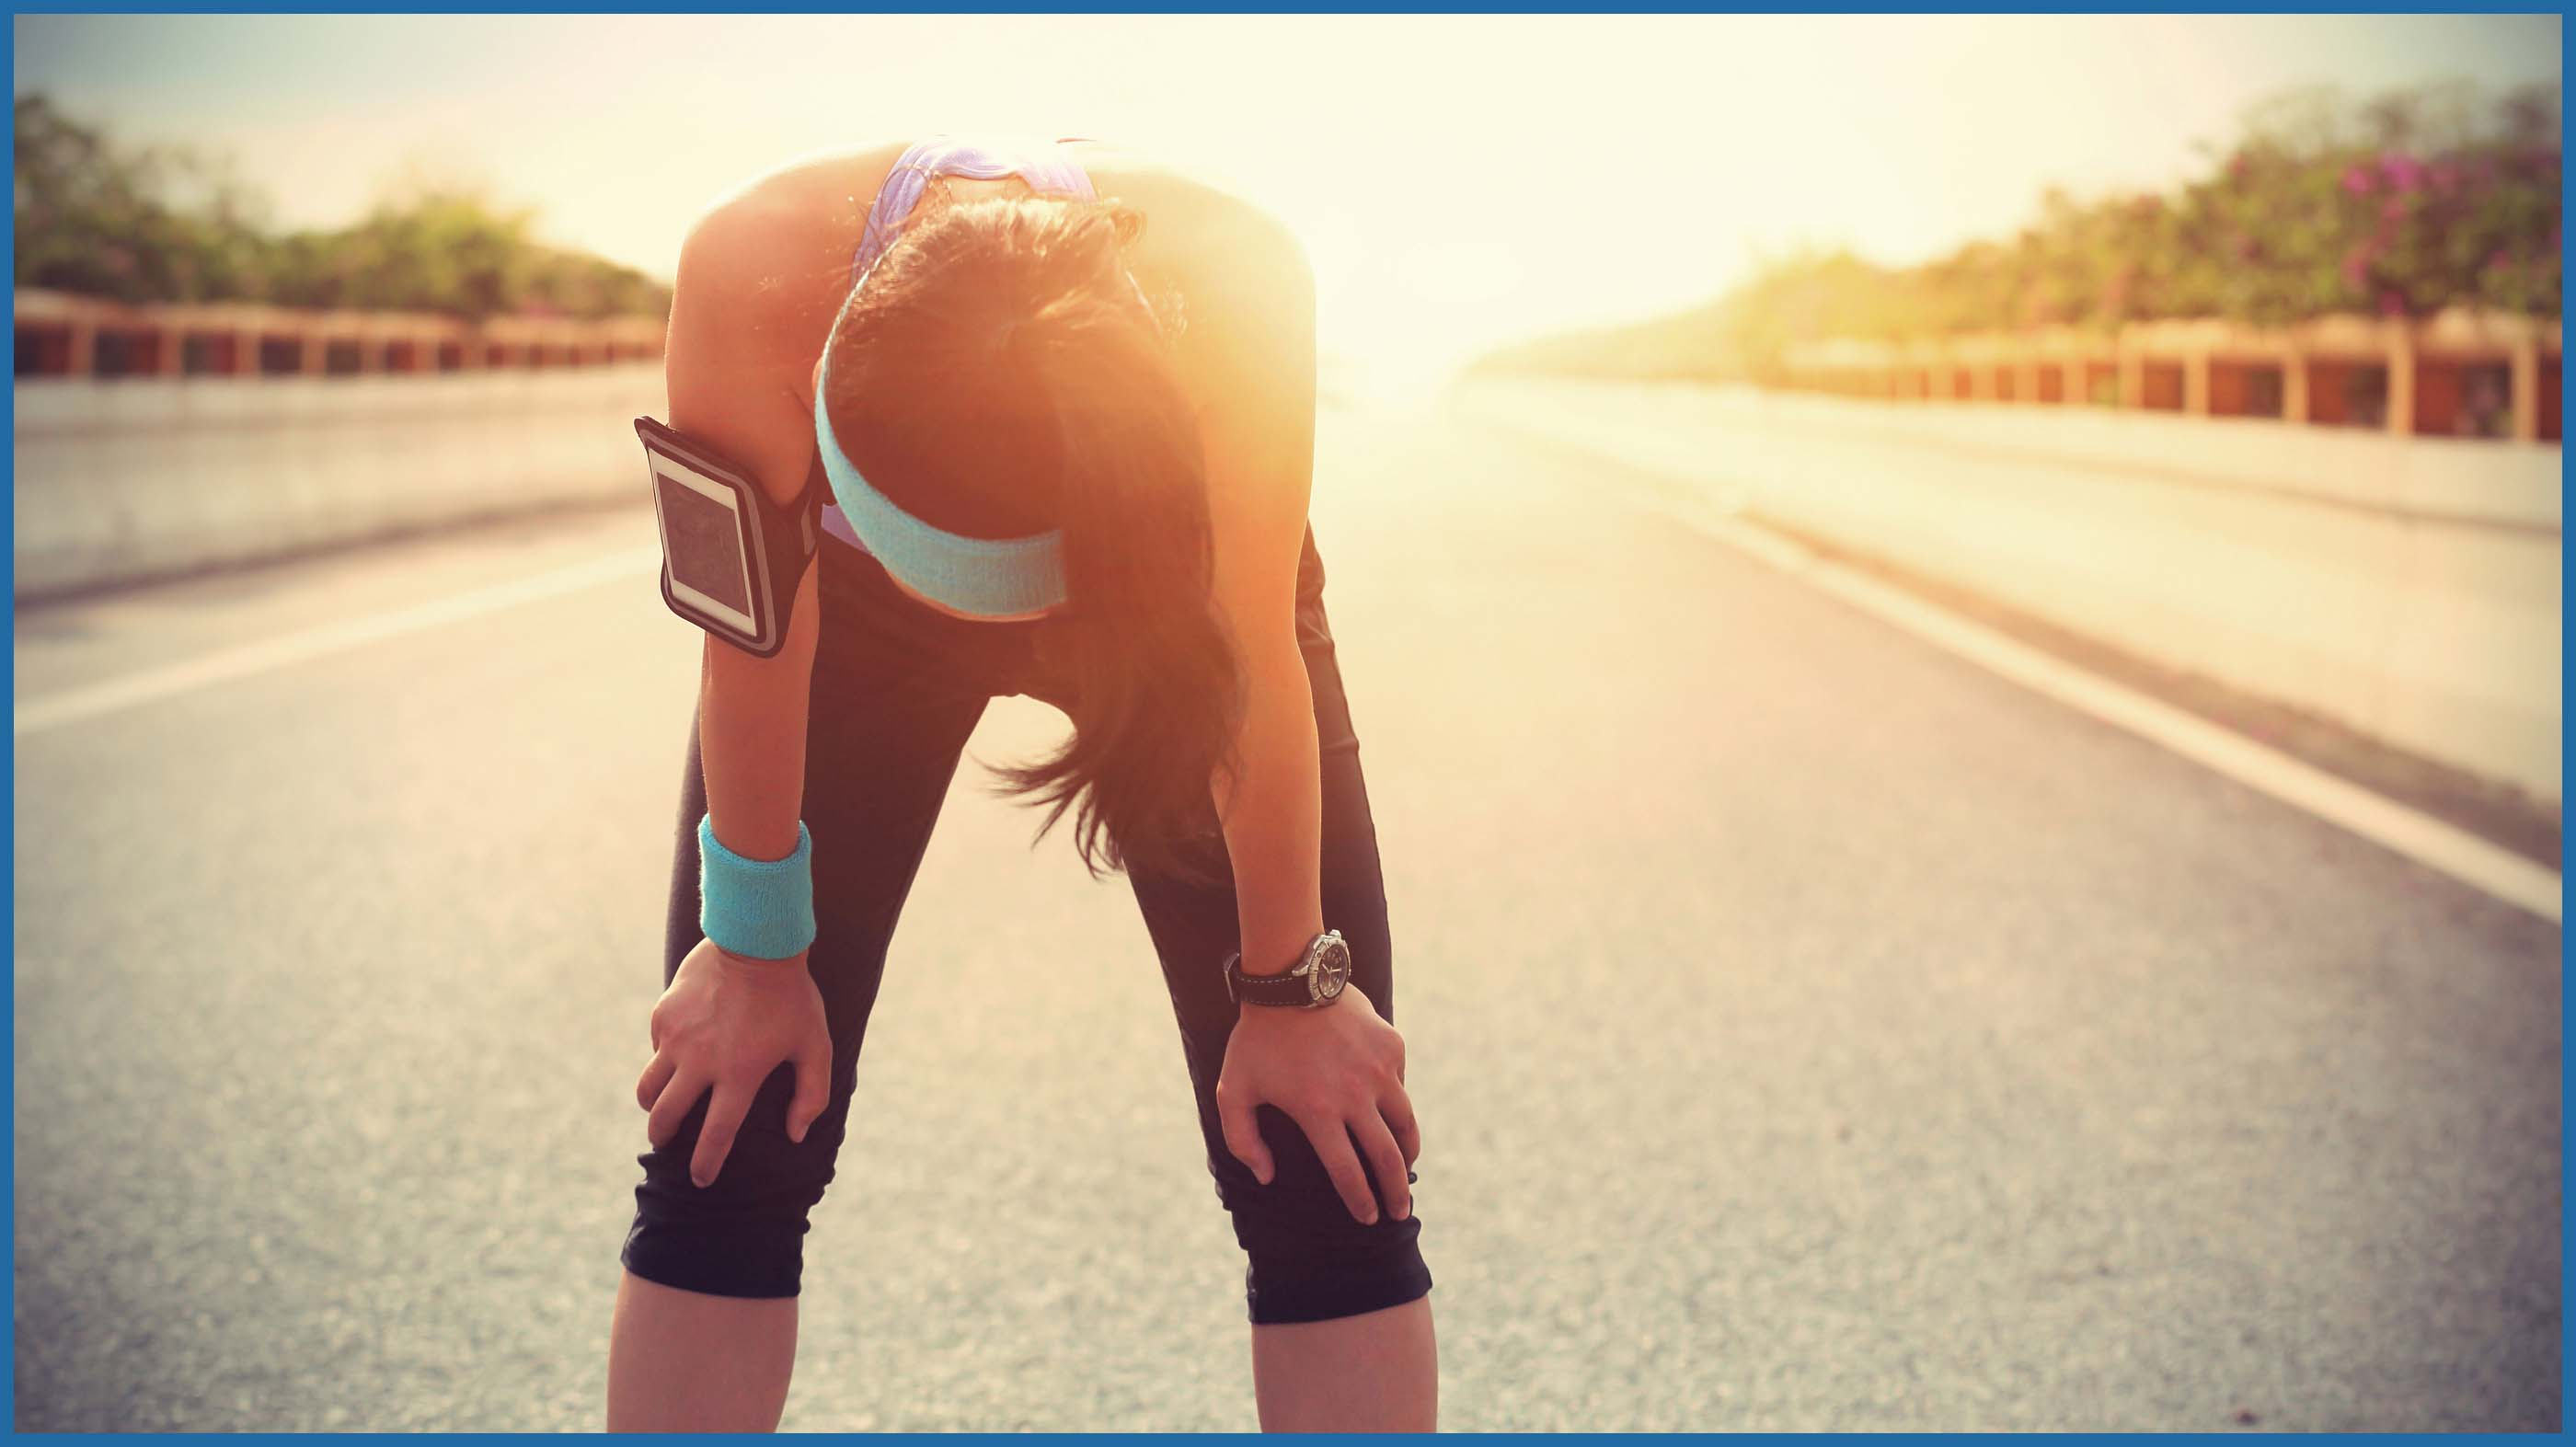 Tips to deal with long term fatigue from the Anderson Peak Performance blog